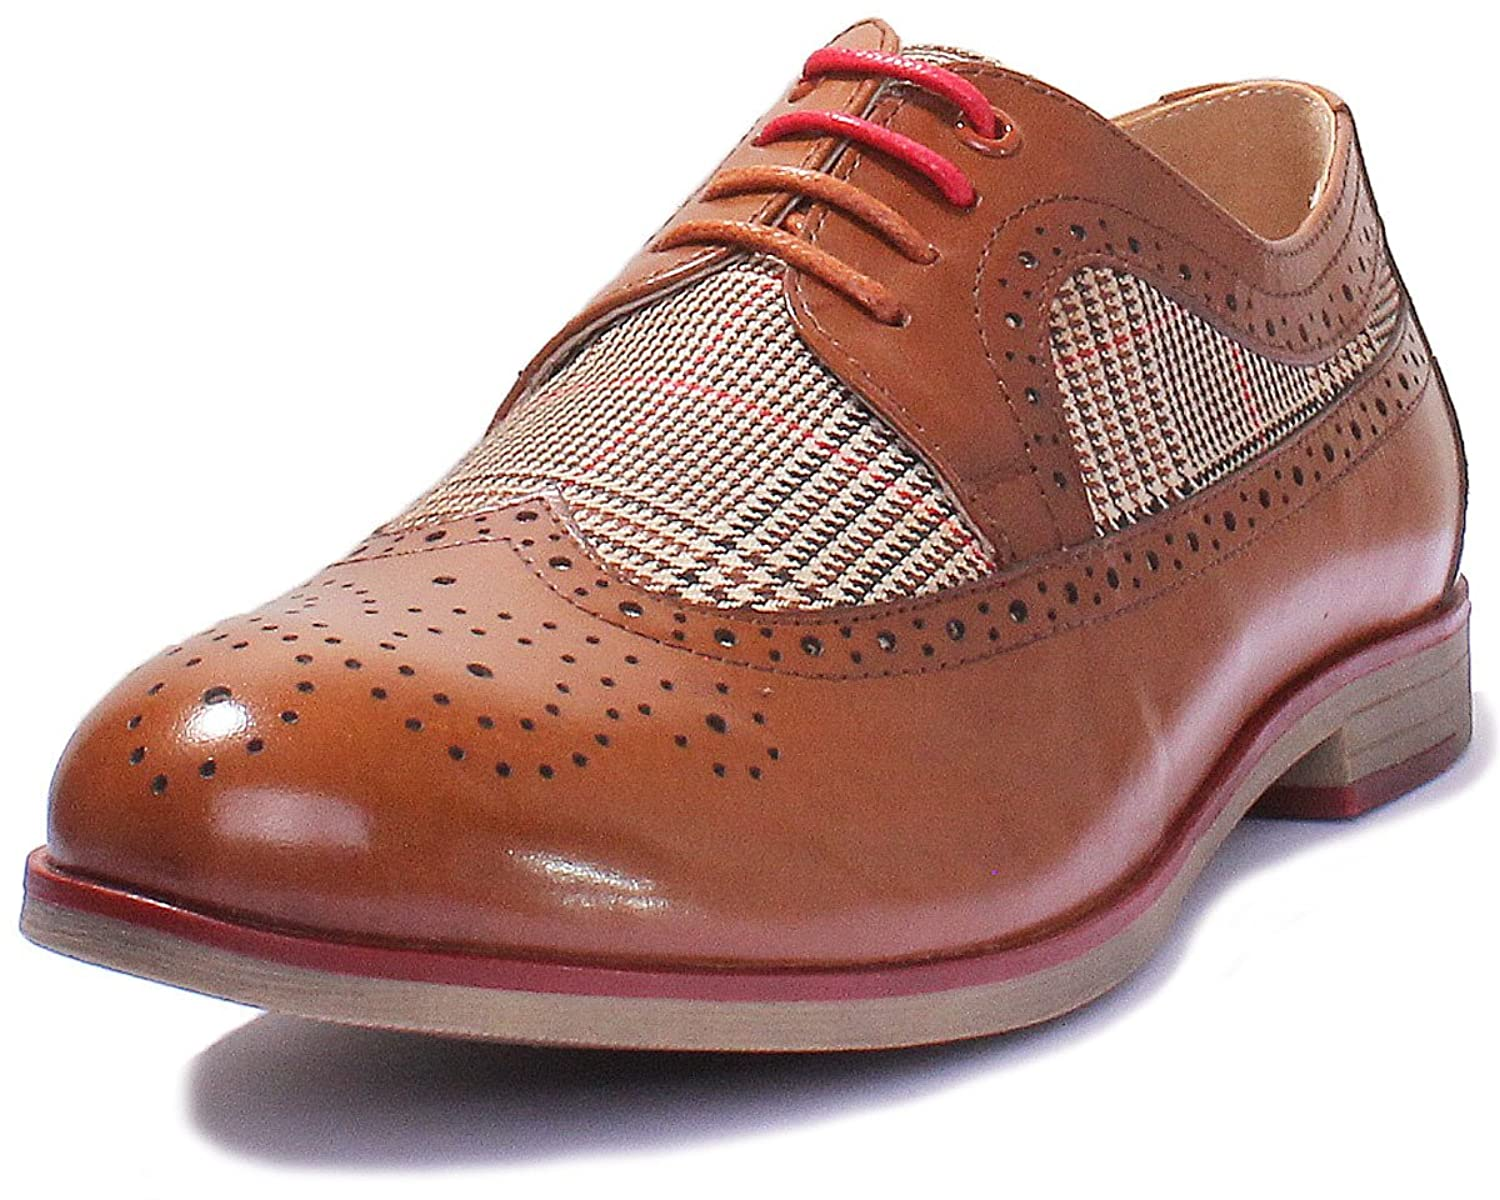 cad82aa664b Justin Reece Melanie Women Leather English Lace Up Check: Amazon.co.uk:  Shoes & Bags